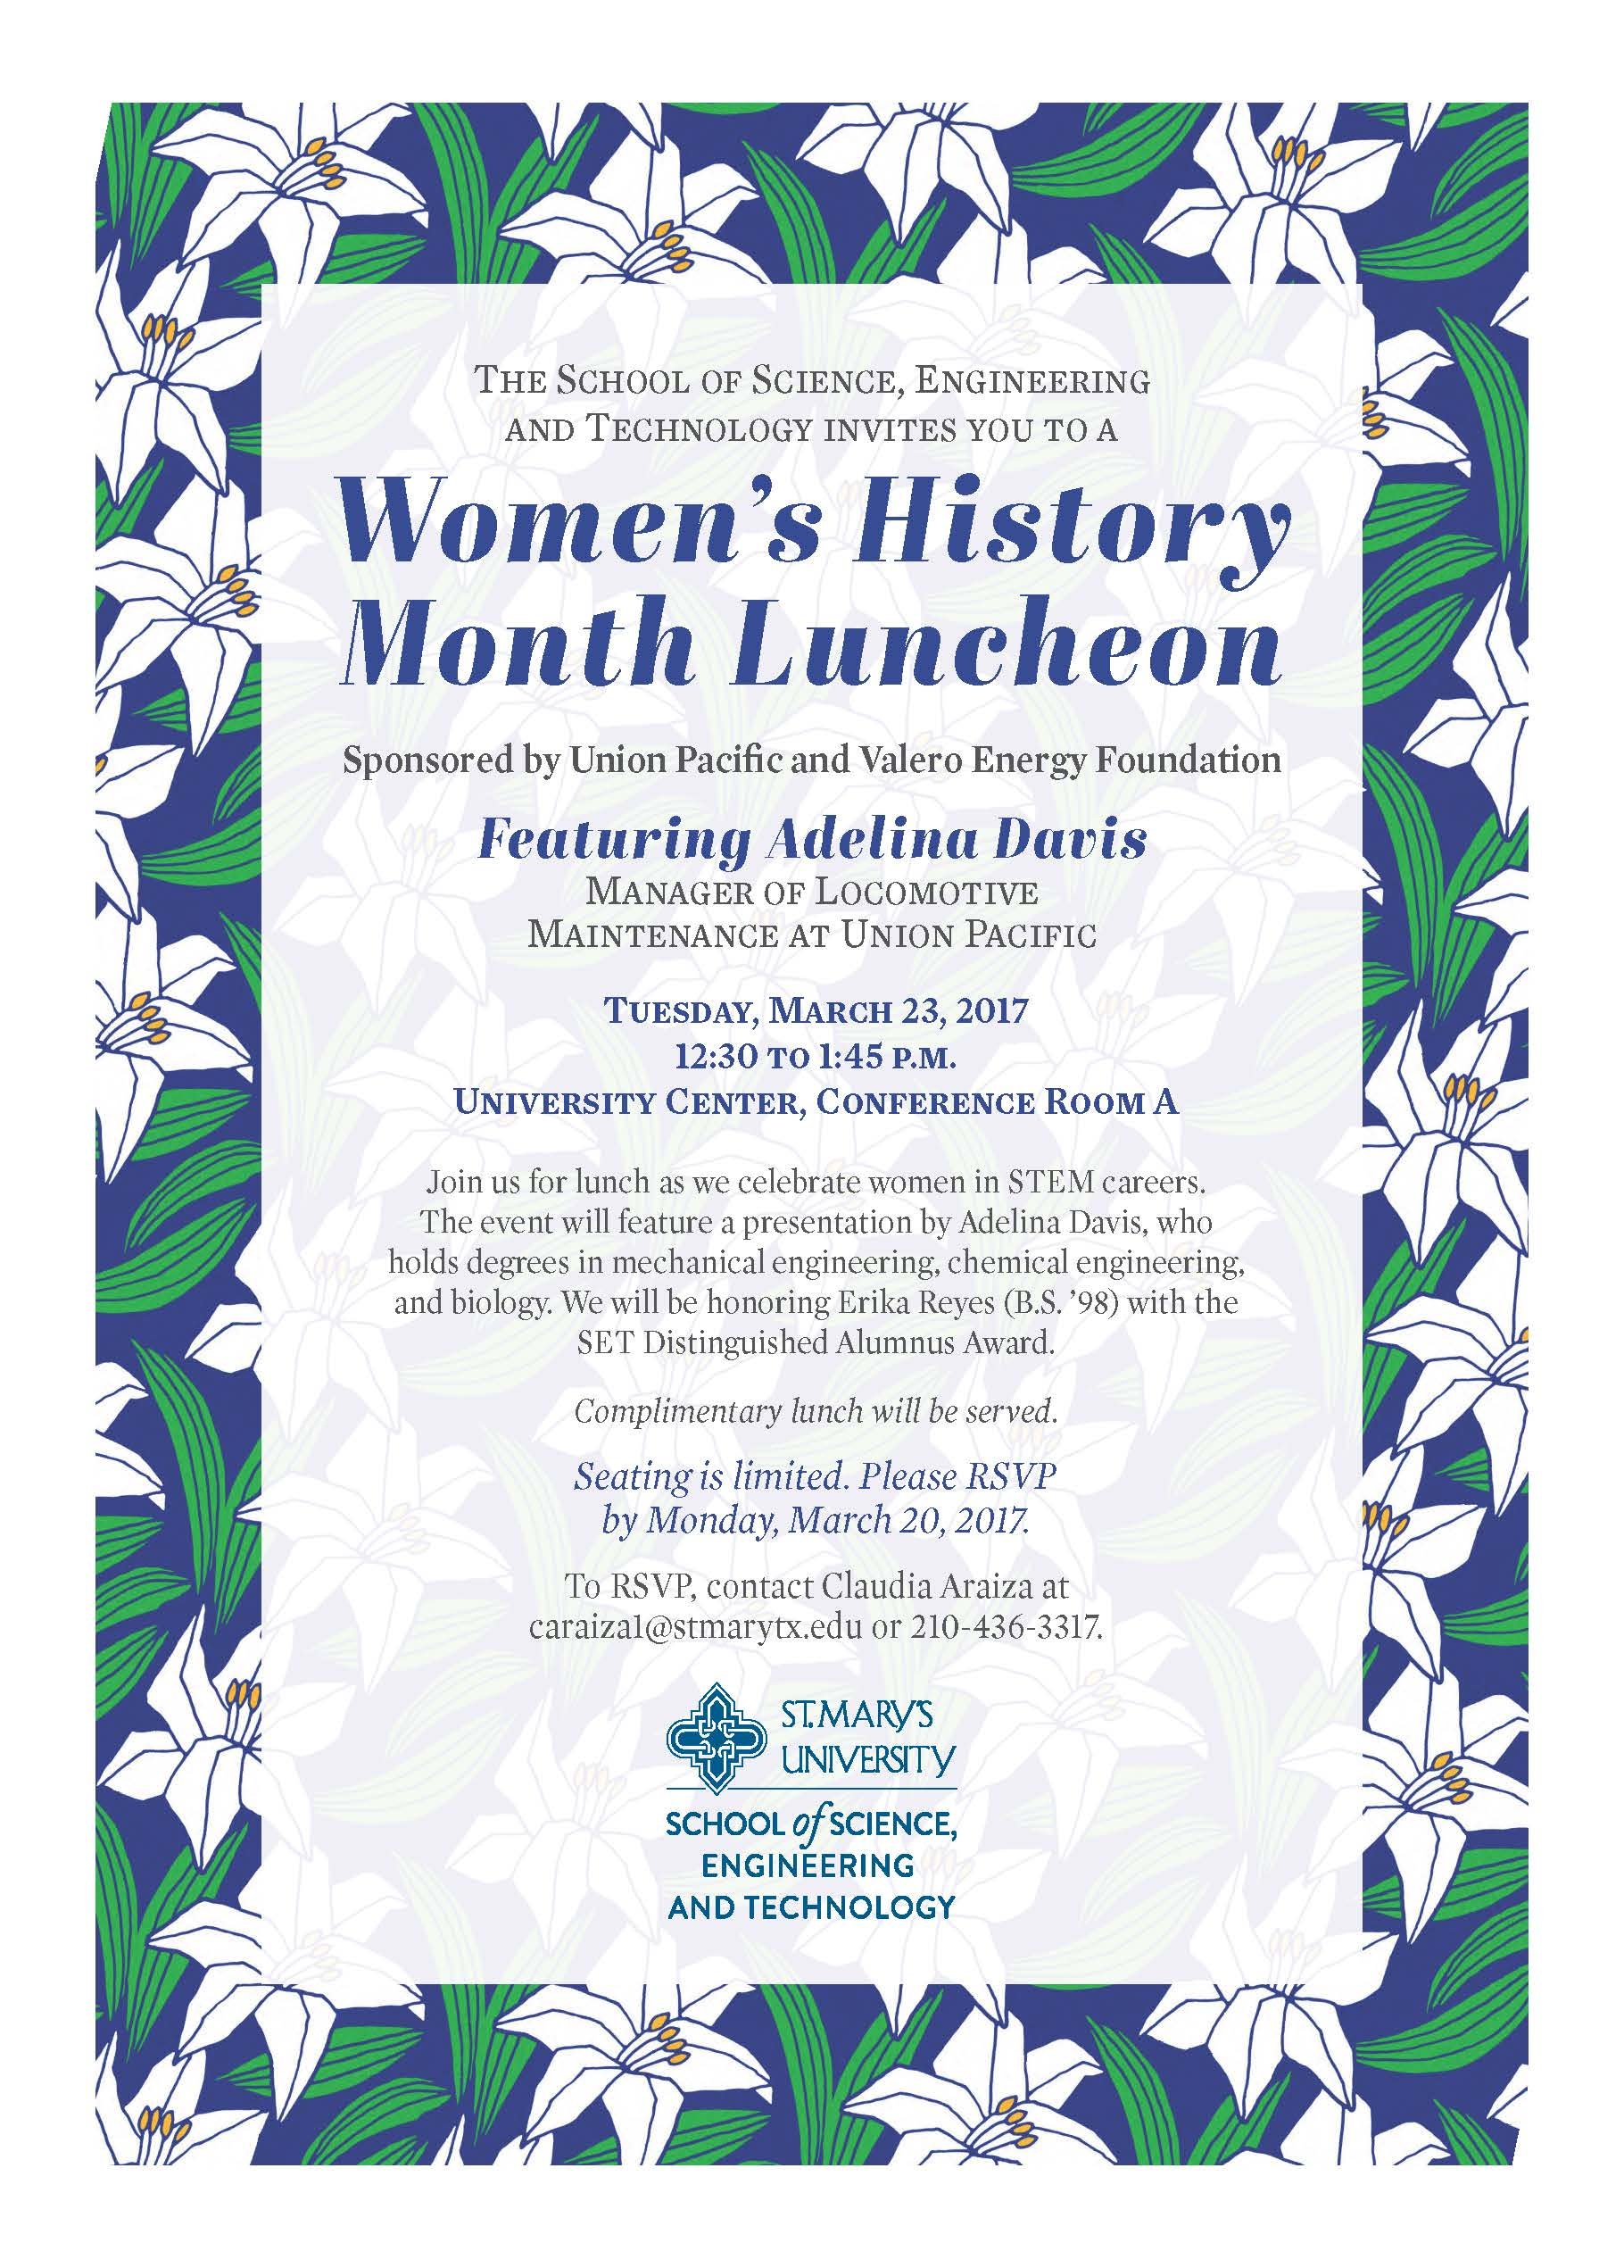 SET Women's History Month Luncheon flyer - March 23, 2017